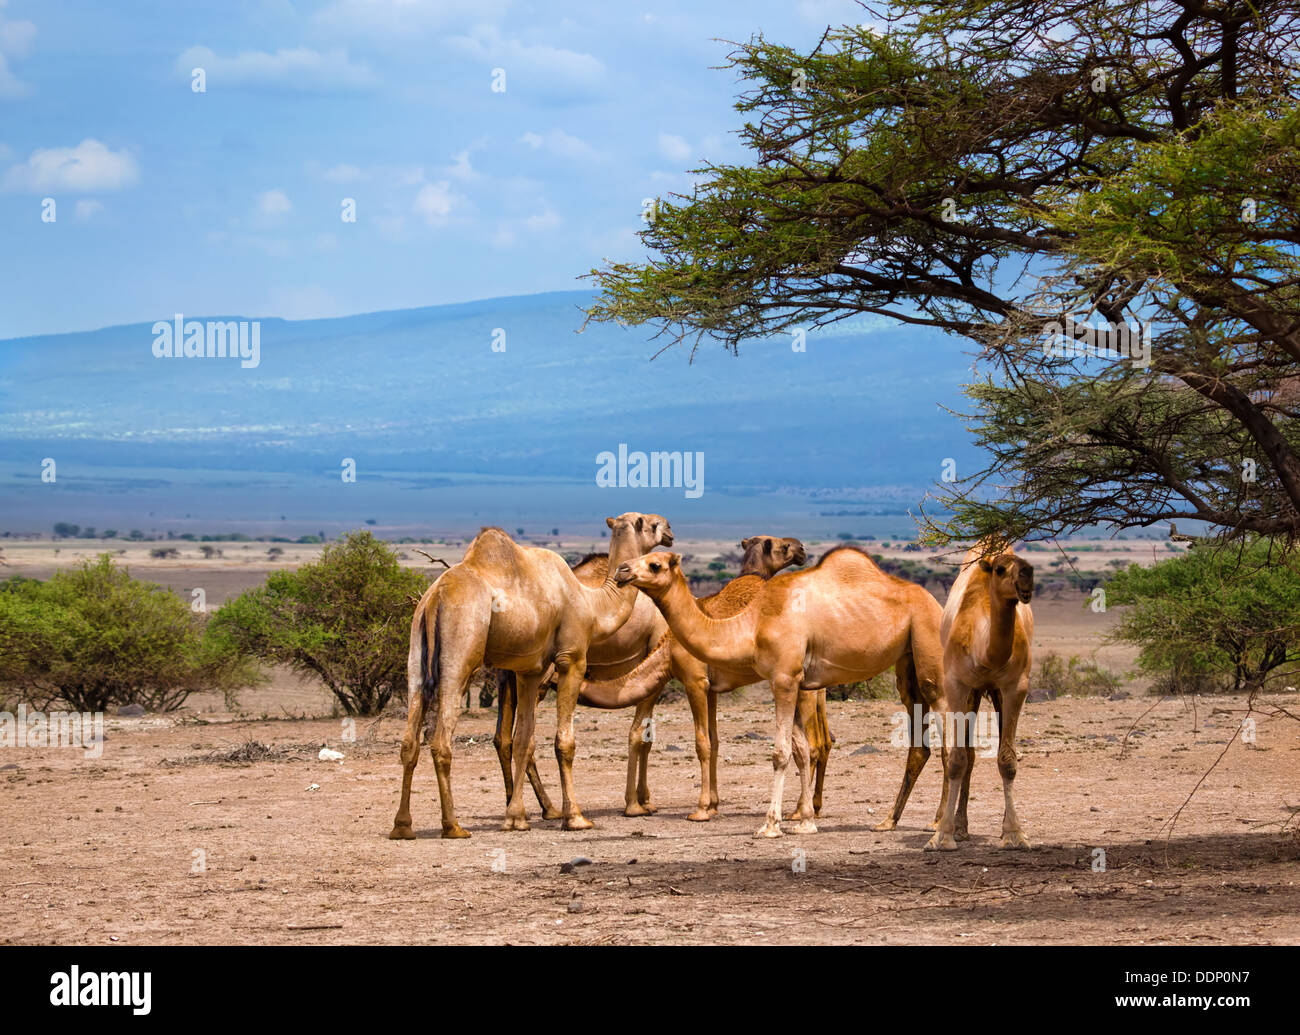 Group of camels under the tree in Africa Stock Photo